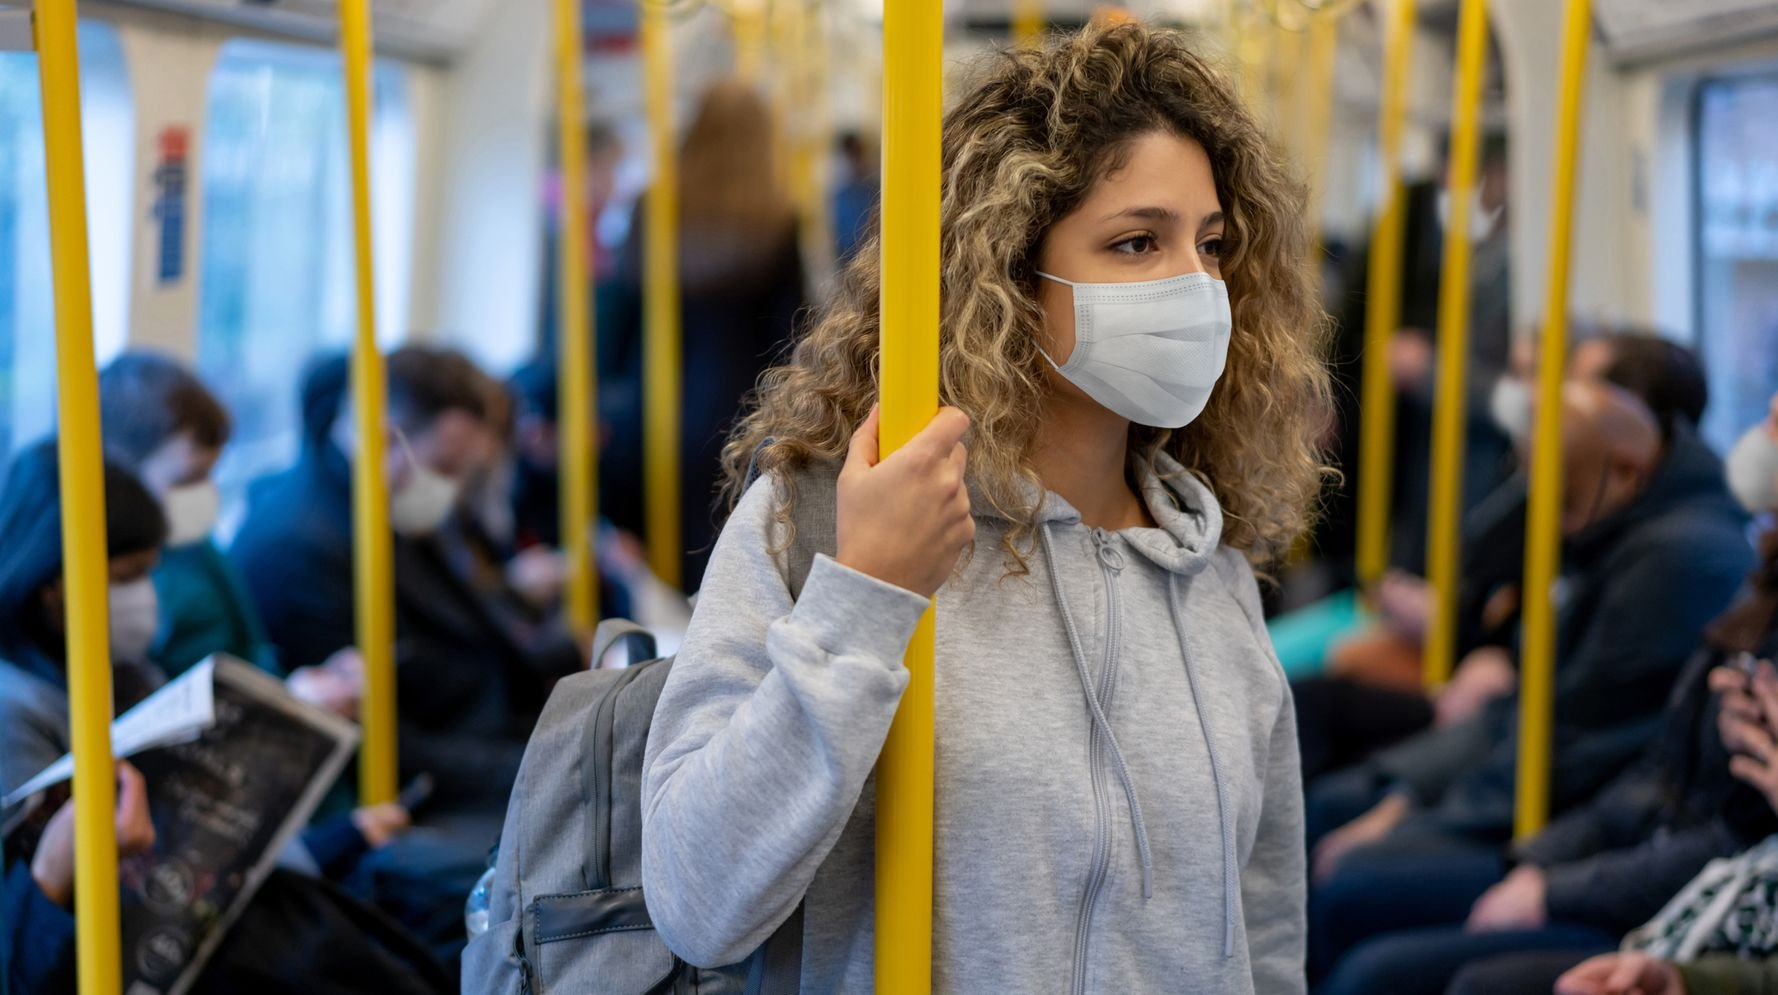 Scientists Agree, We Should Not Ditch Face Masks On July 19